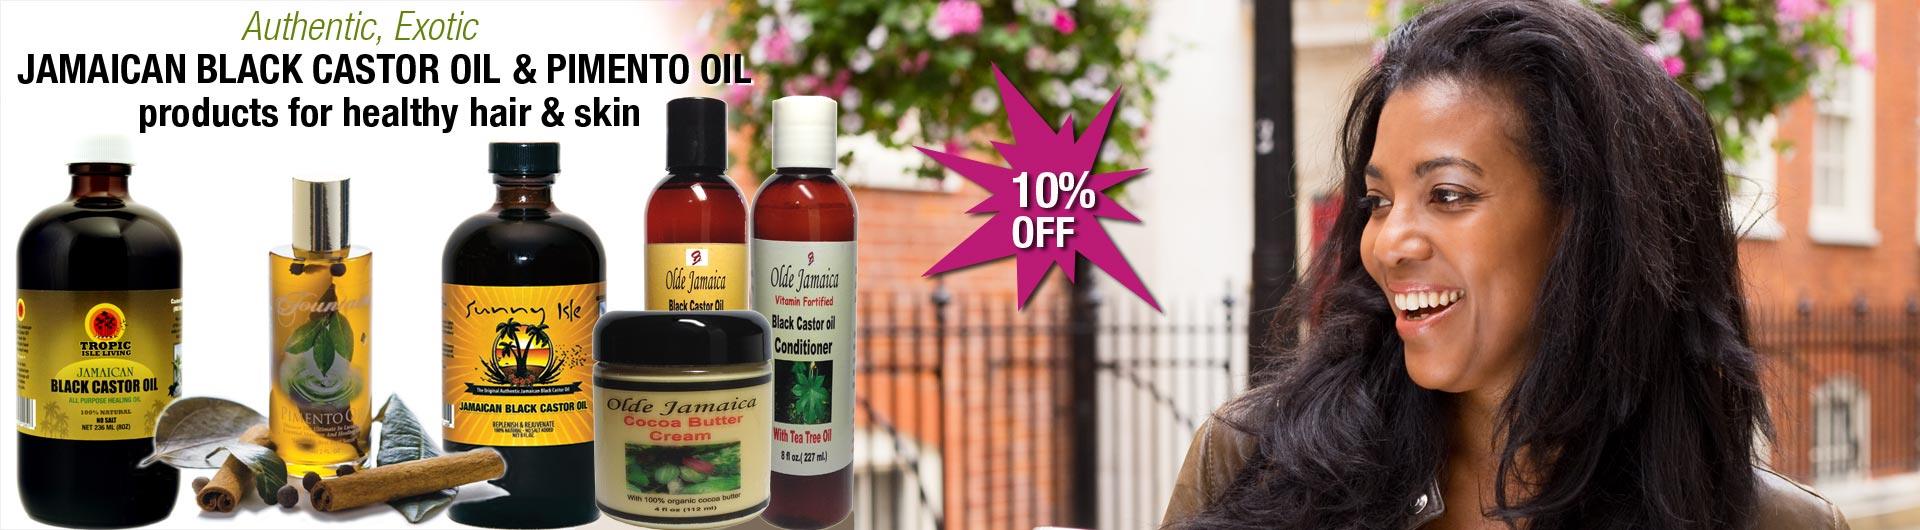 Authentic and Natural JBCO products!